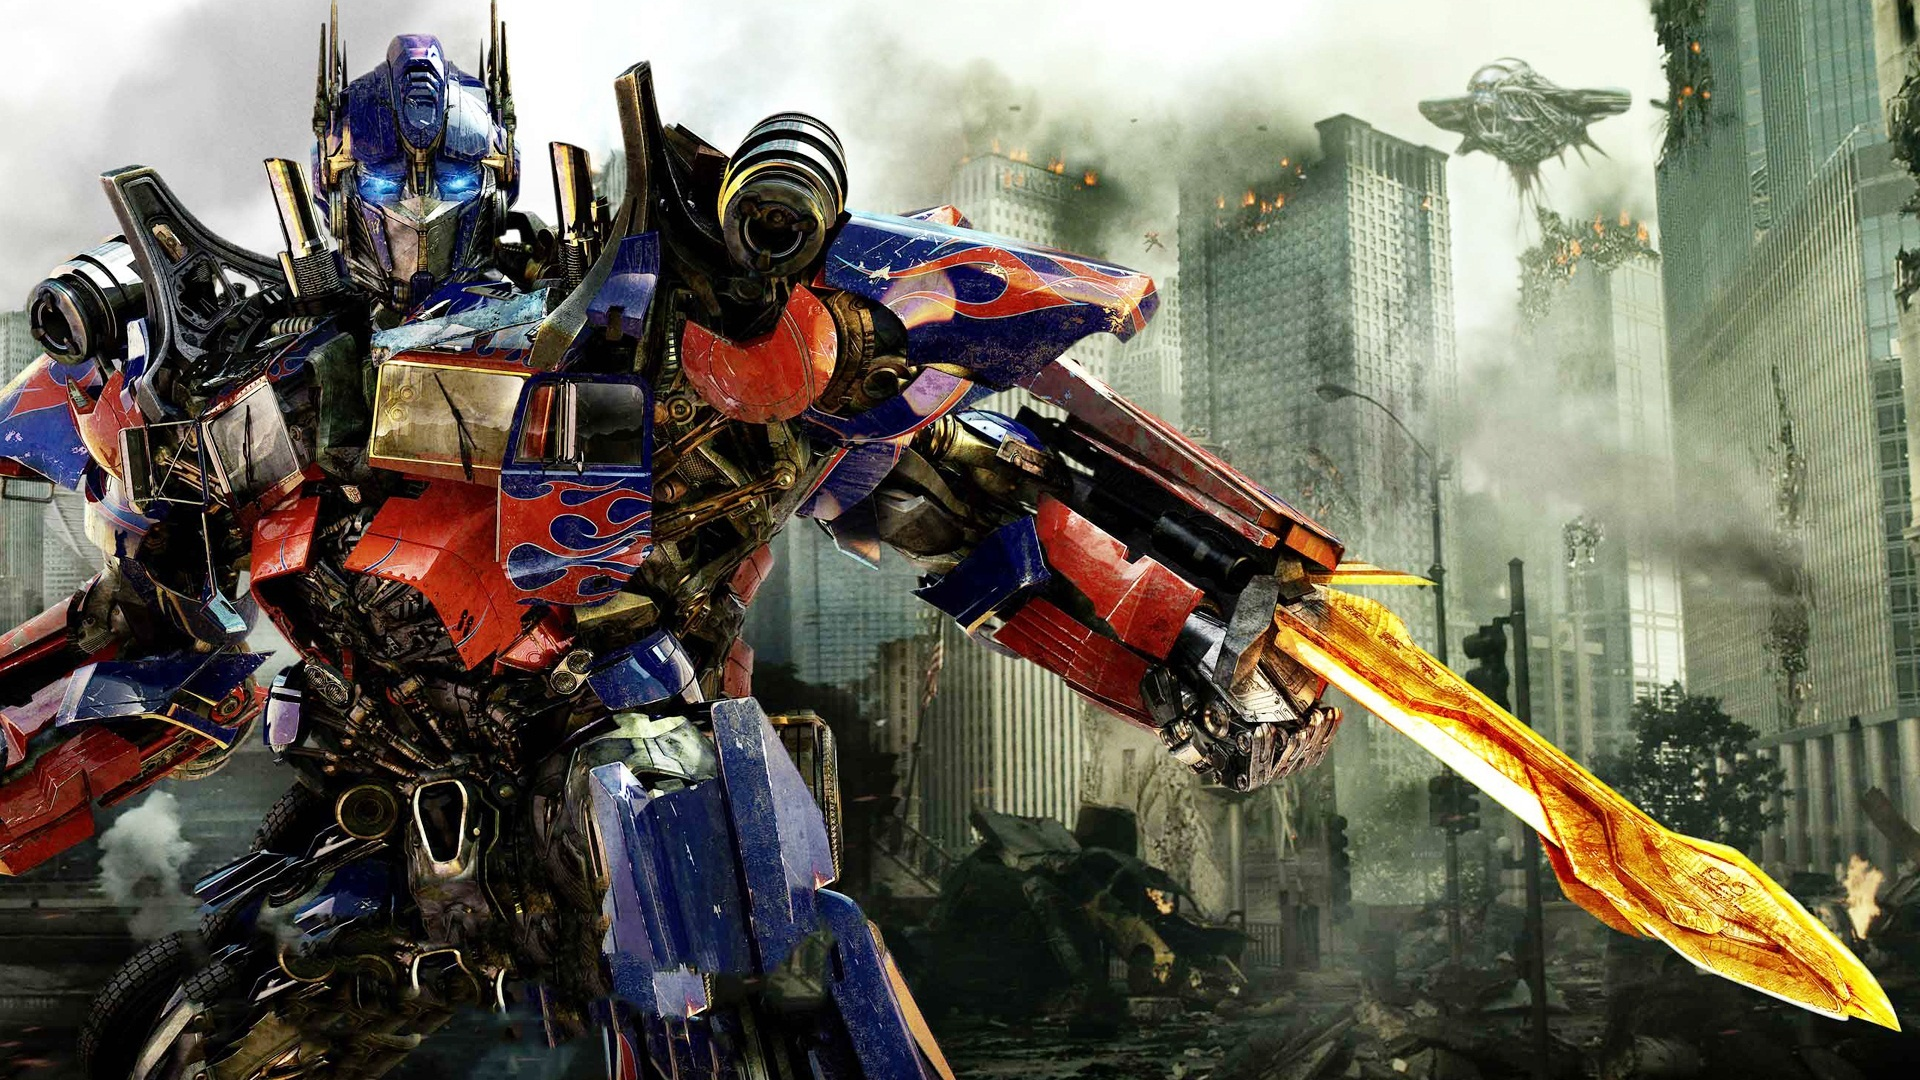 optimus prime in transformers 3 wallpapers in jpg format for free